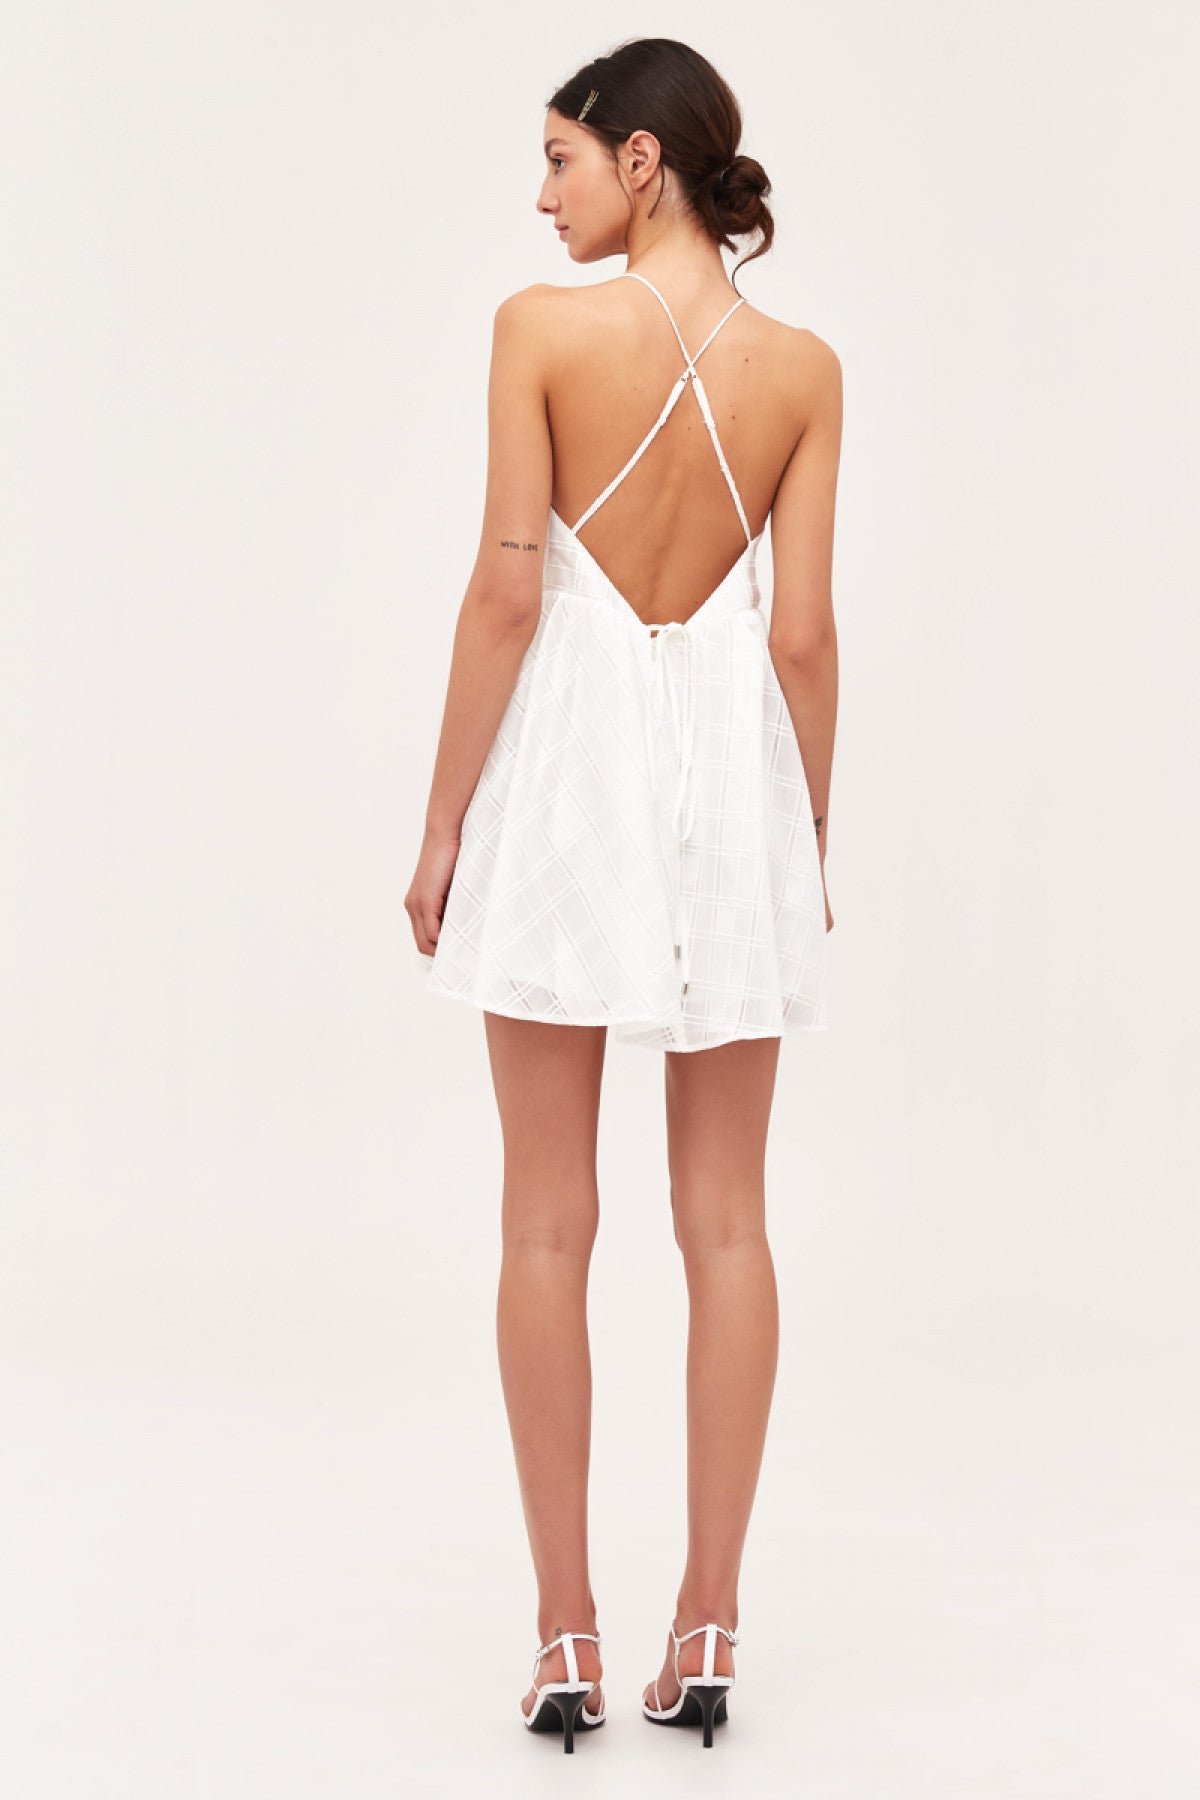 SAME THINGS MINI DRESS ivory check